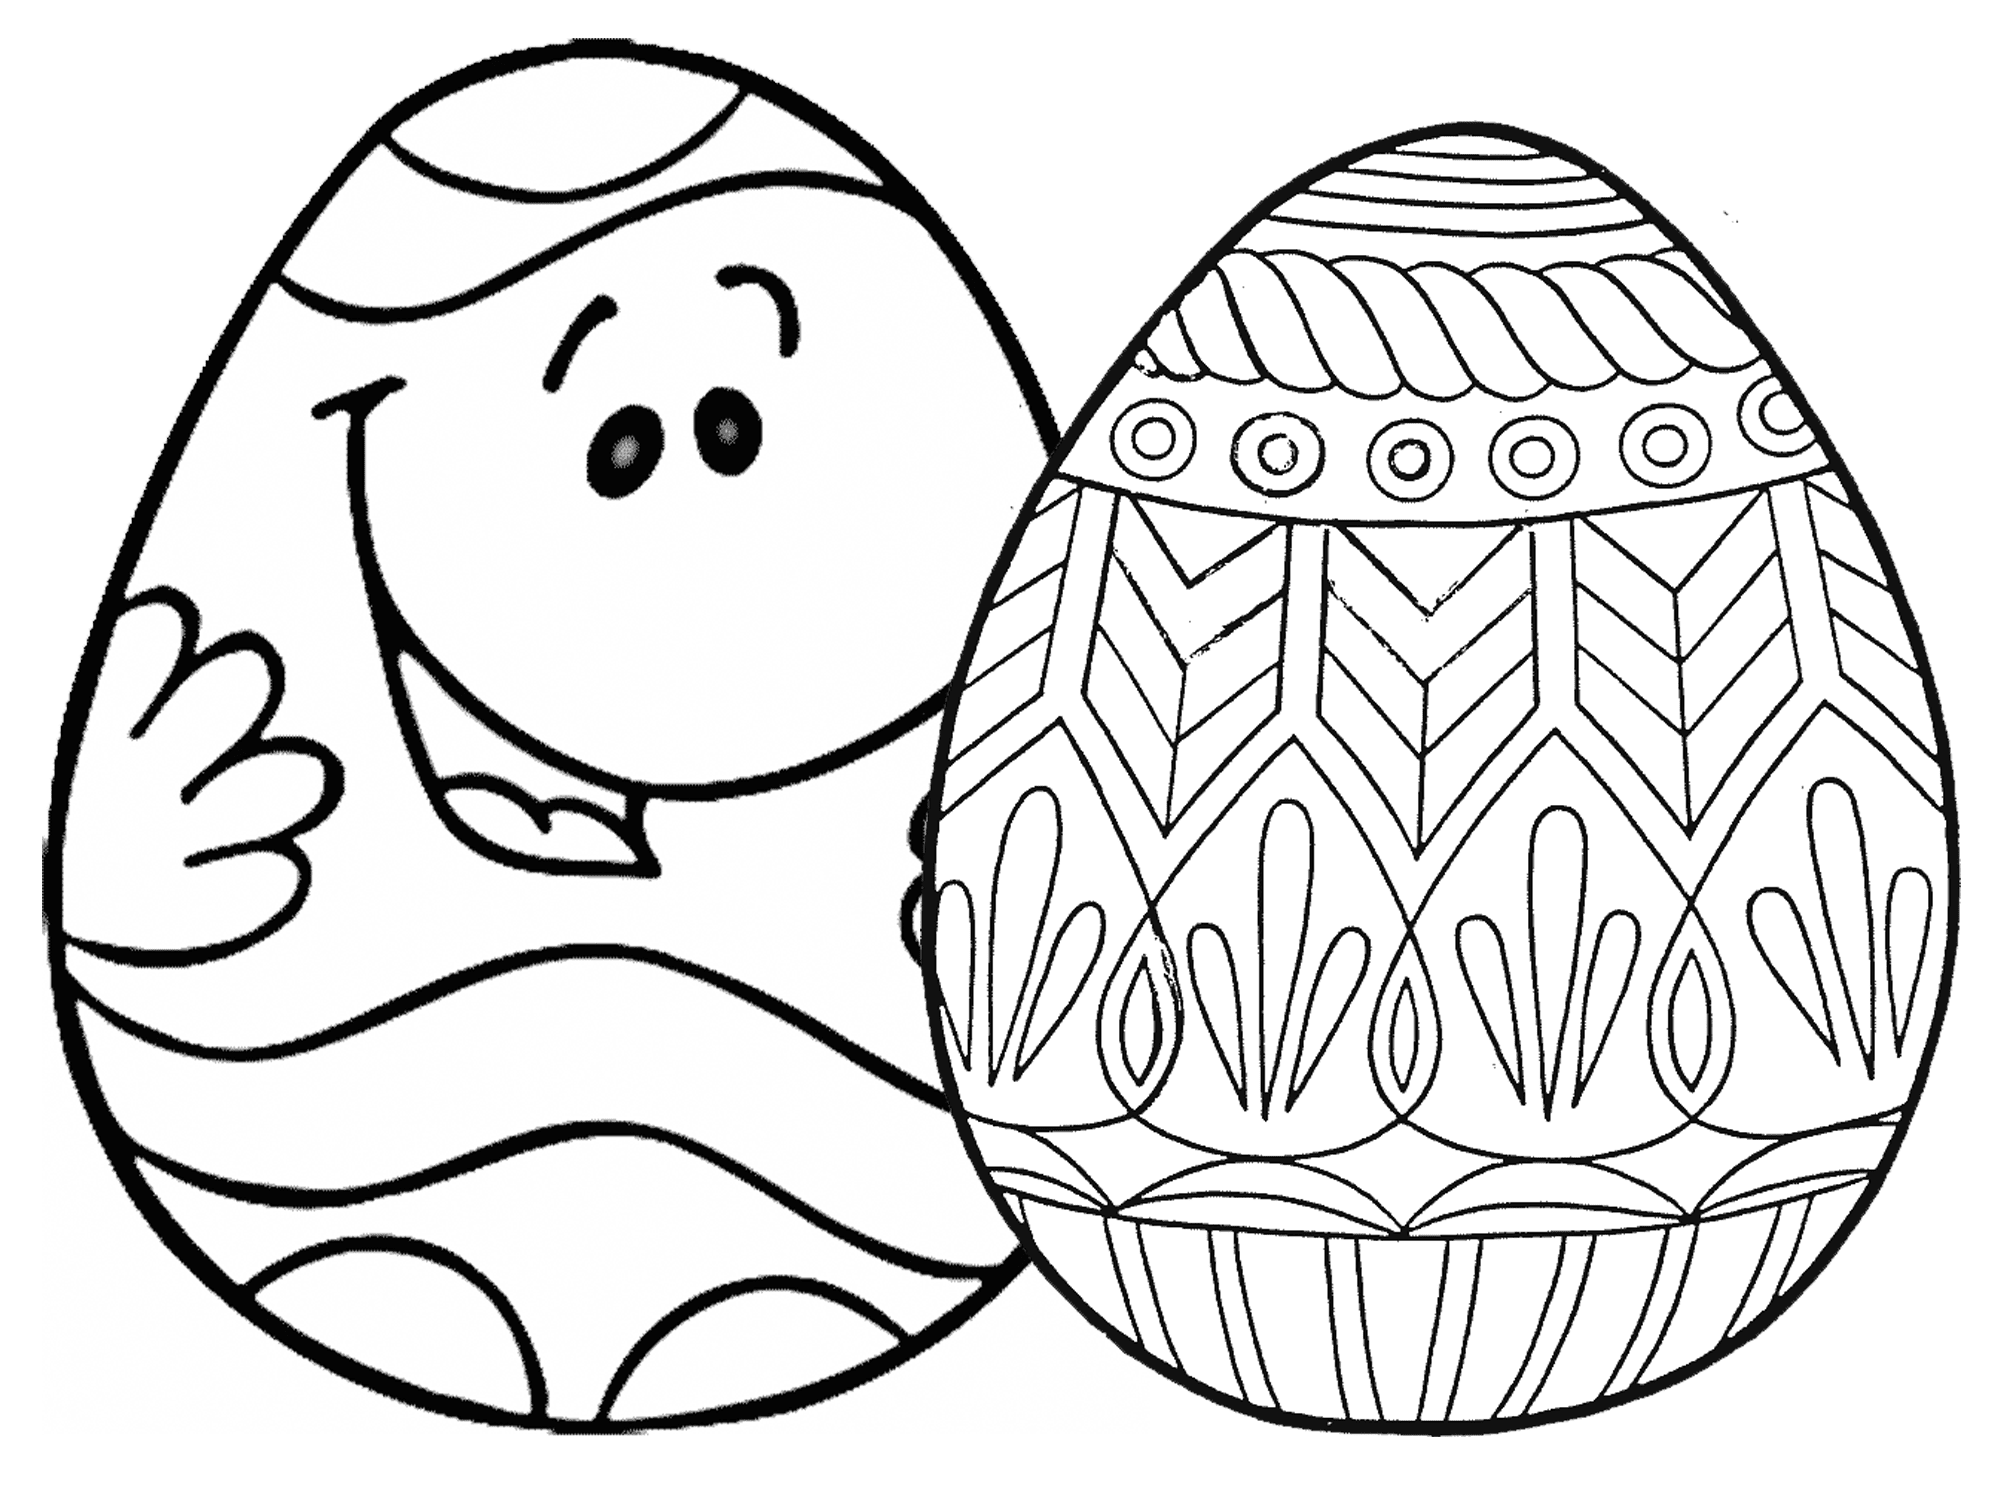 egg coloring page craftsactvities and worksheets for preschooltoddler and coloring page egg